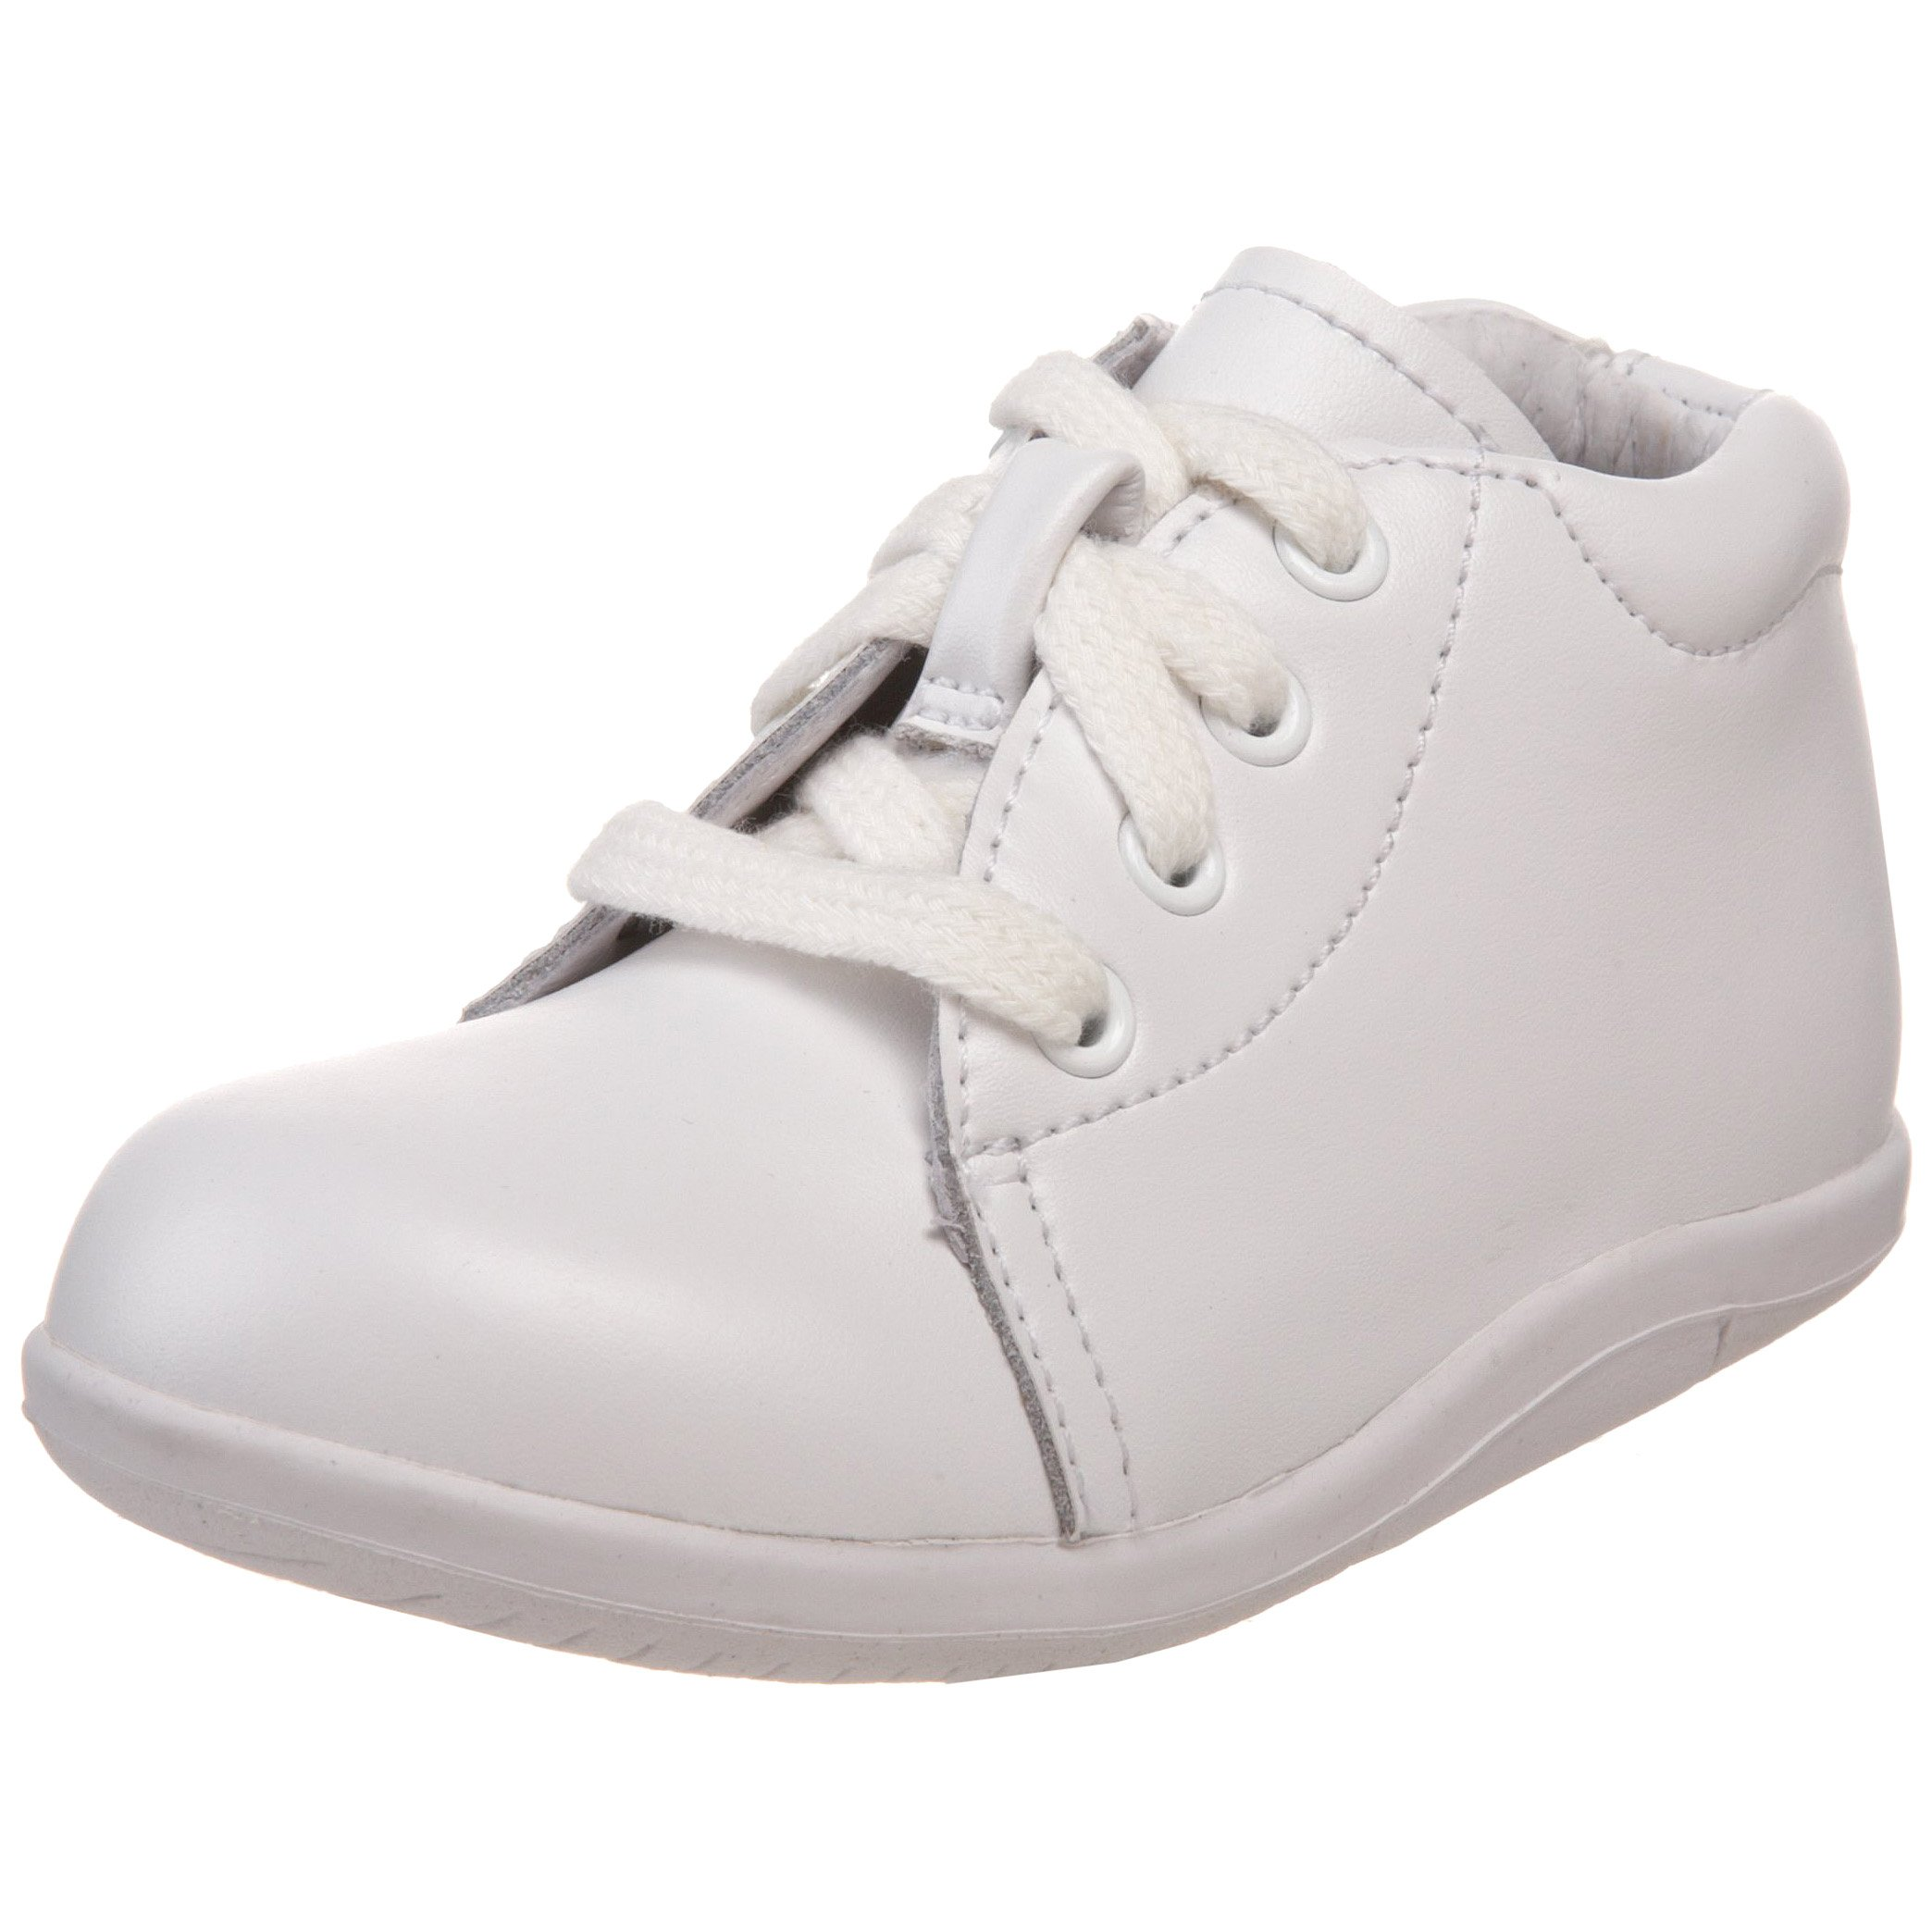 Stride Rite SRTech Elliot Bootie,White,7 2W US Toddler